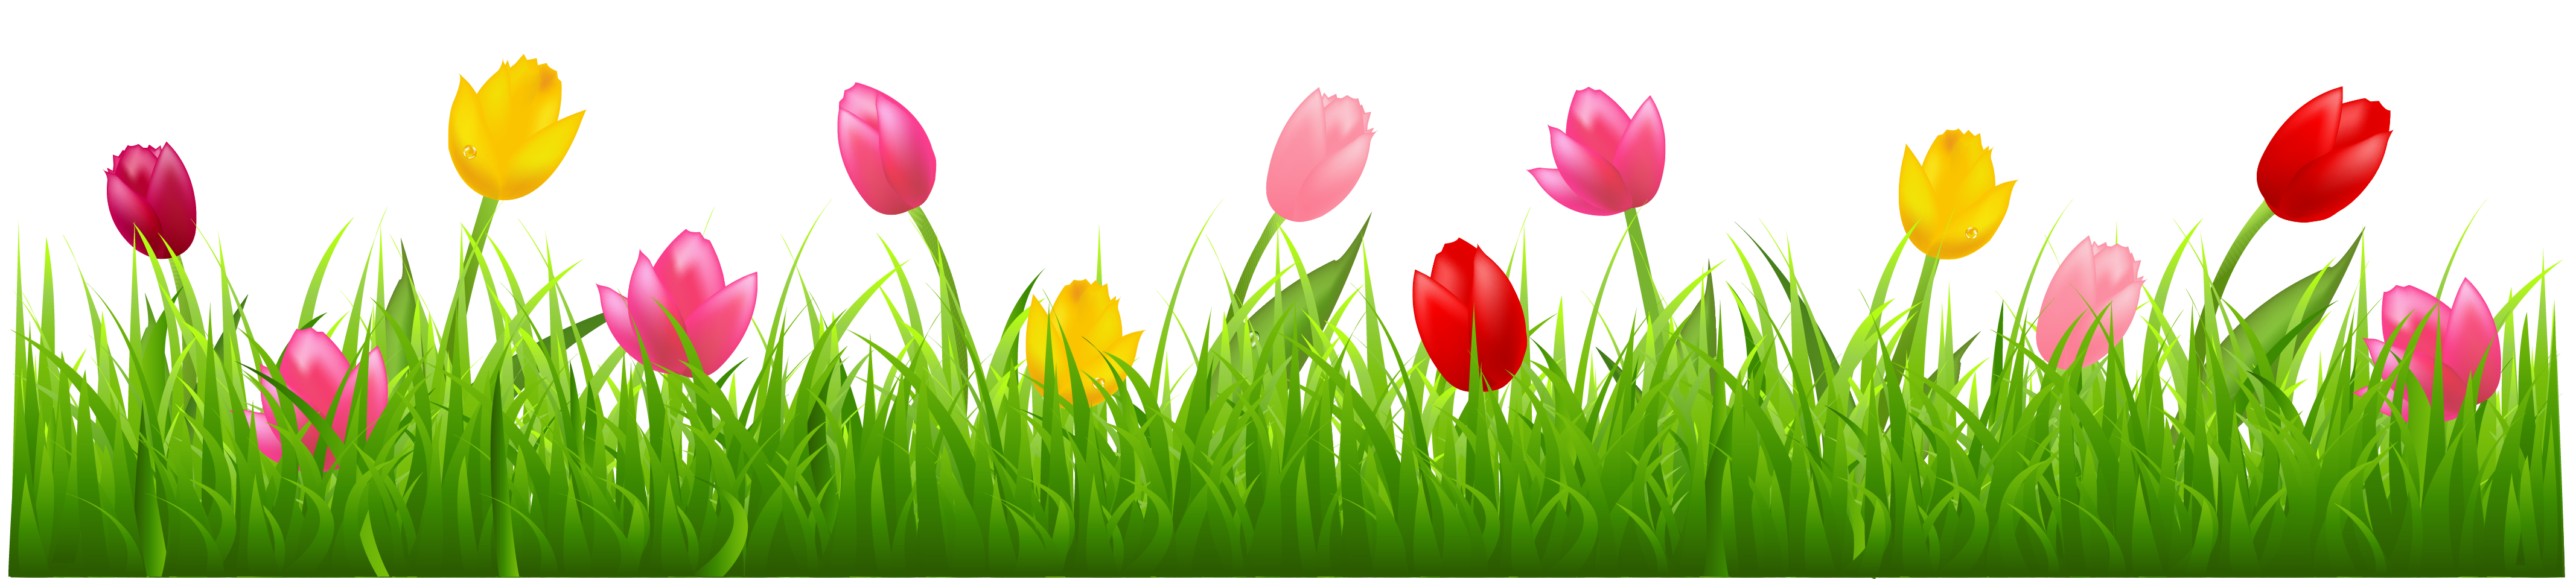 Grass with colorful tulips. Row of flowers png banner transparent download